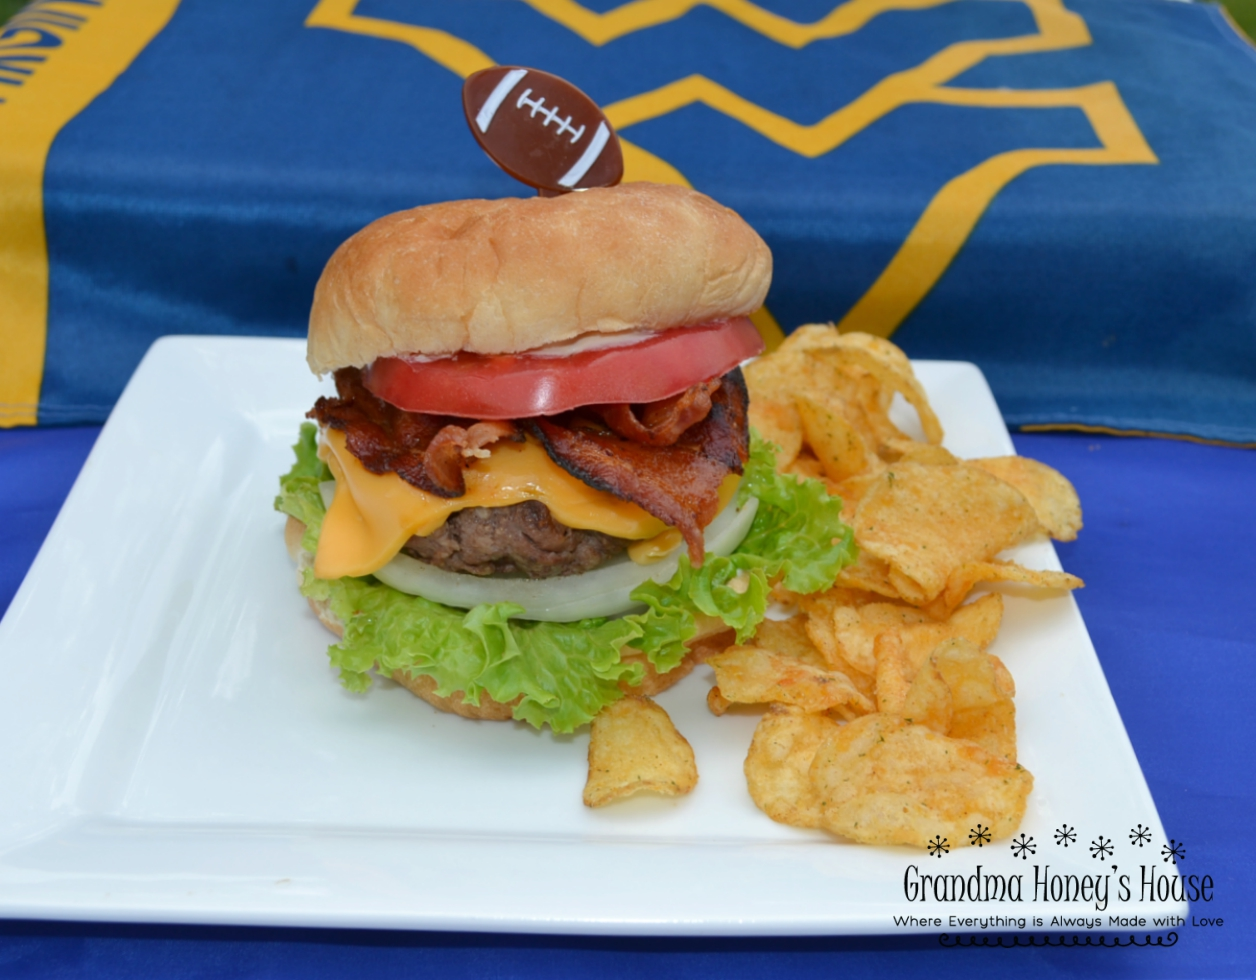 The WV Mountaineer Burger was created to honor the WVU football team and the state of WV. Perfect for tailgates. Loaded with beef, cheese and condiments.